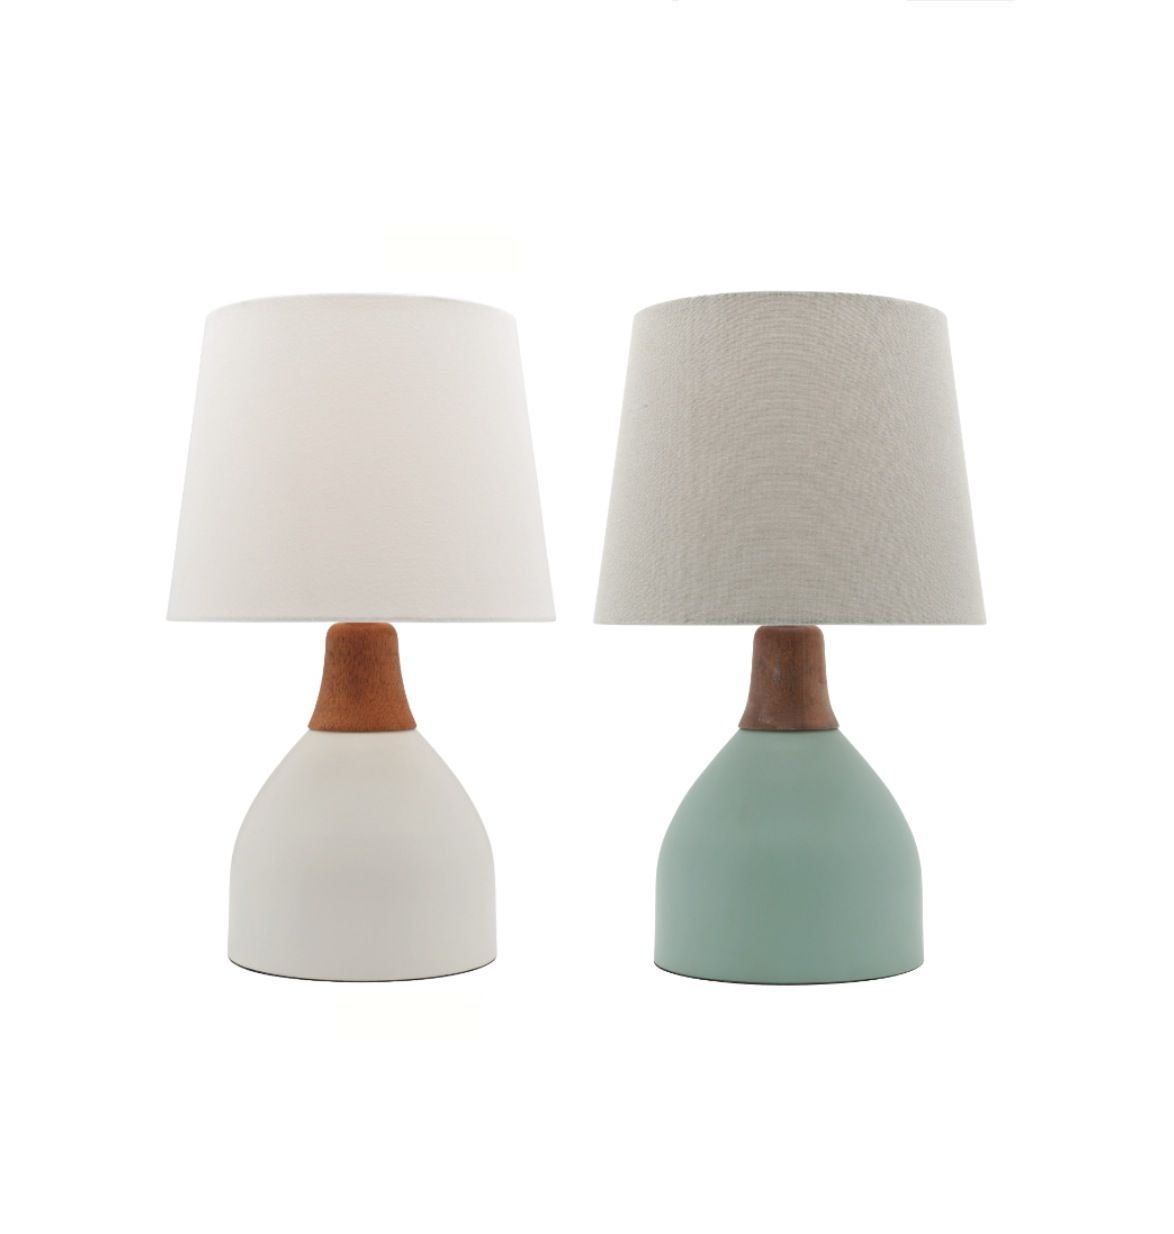 Madeline table lamp white or duck egg green with timber mercator madeline table lamp white or duck egg green with timber mercator a62911 7900 aloadofball Images